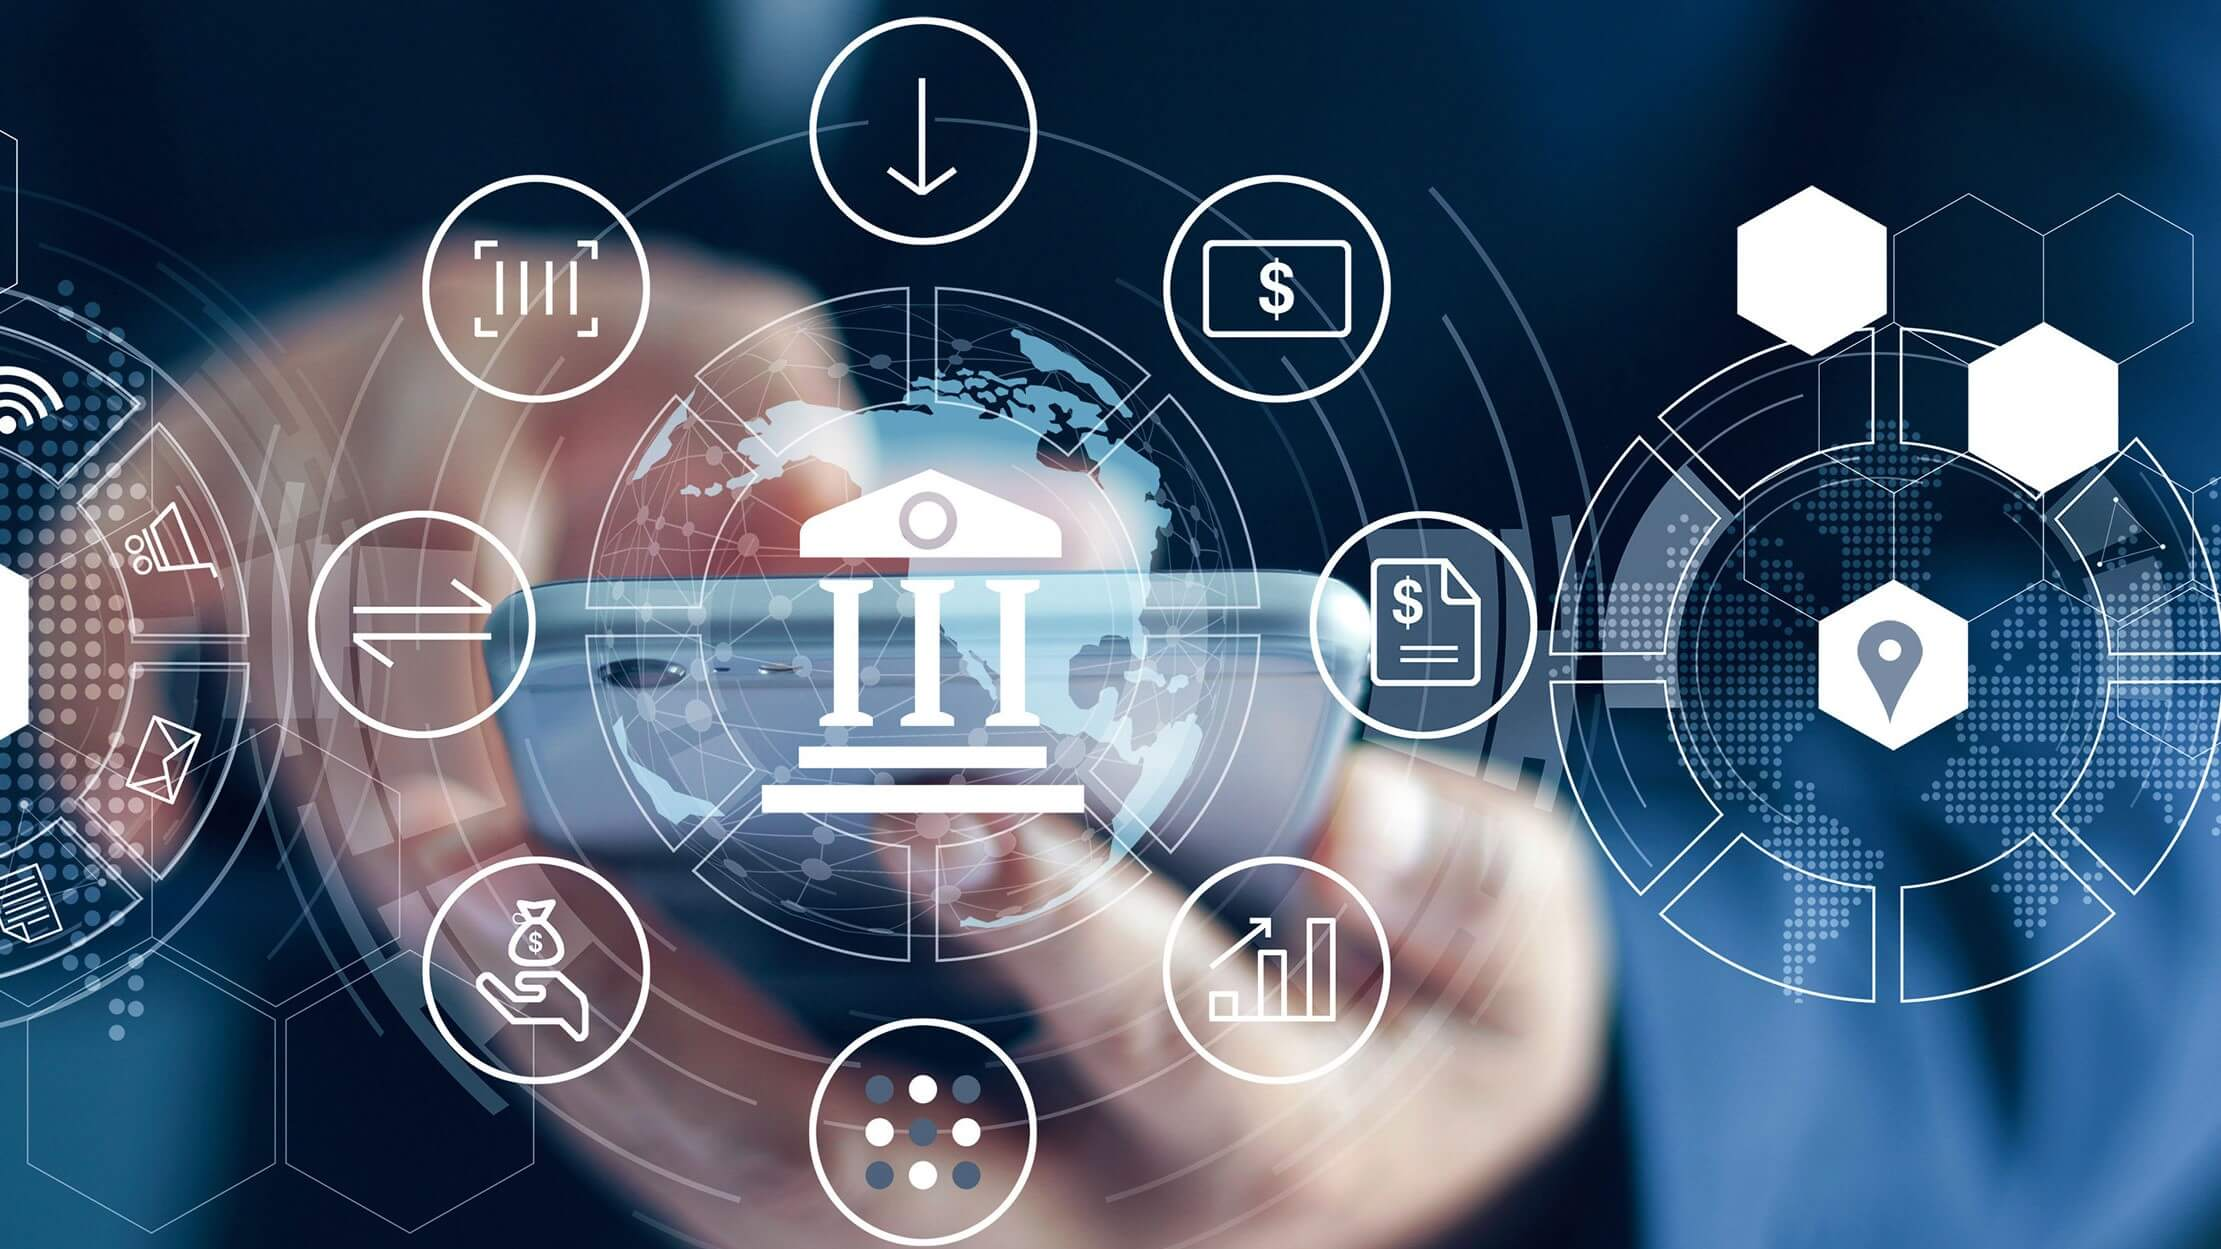 Day 1 benefits realization through Intelligent Automation for a Global Bank